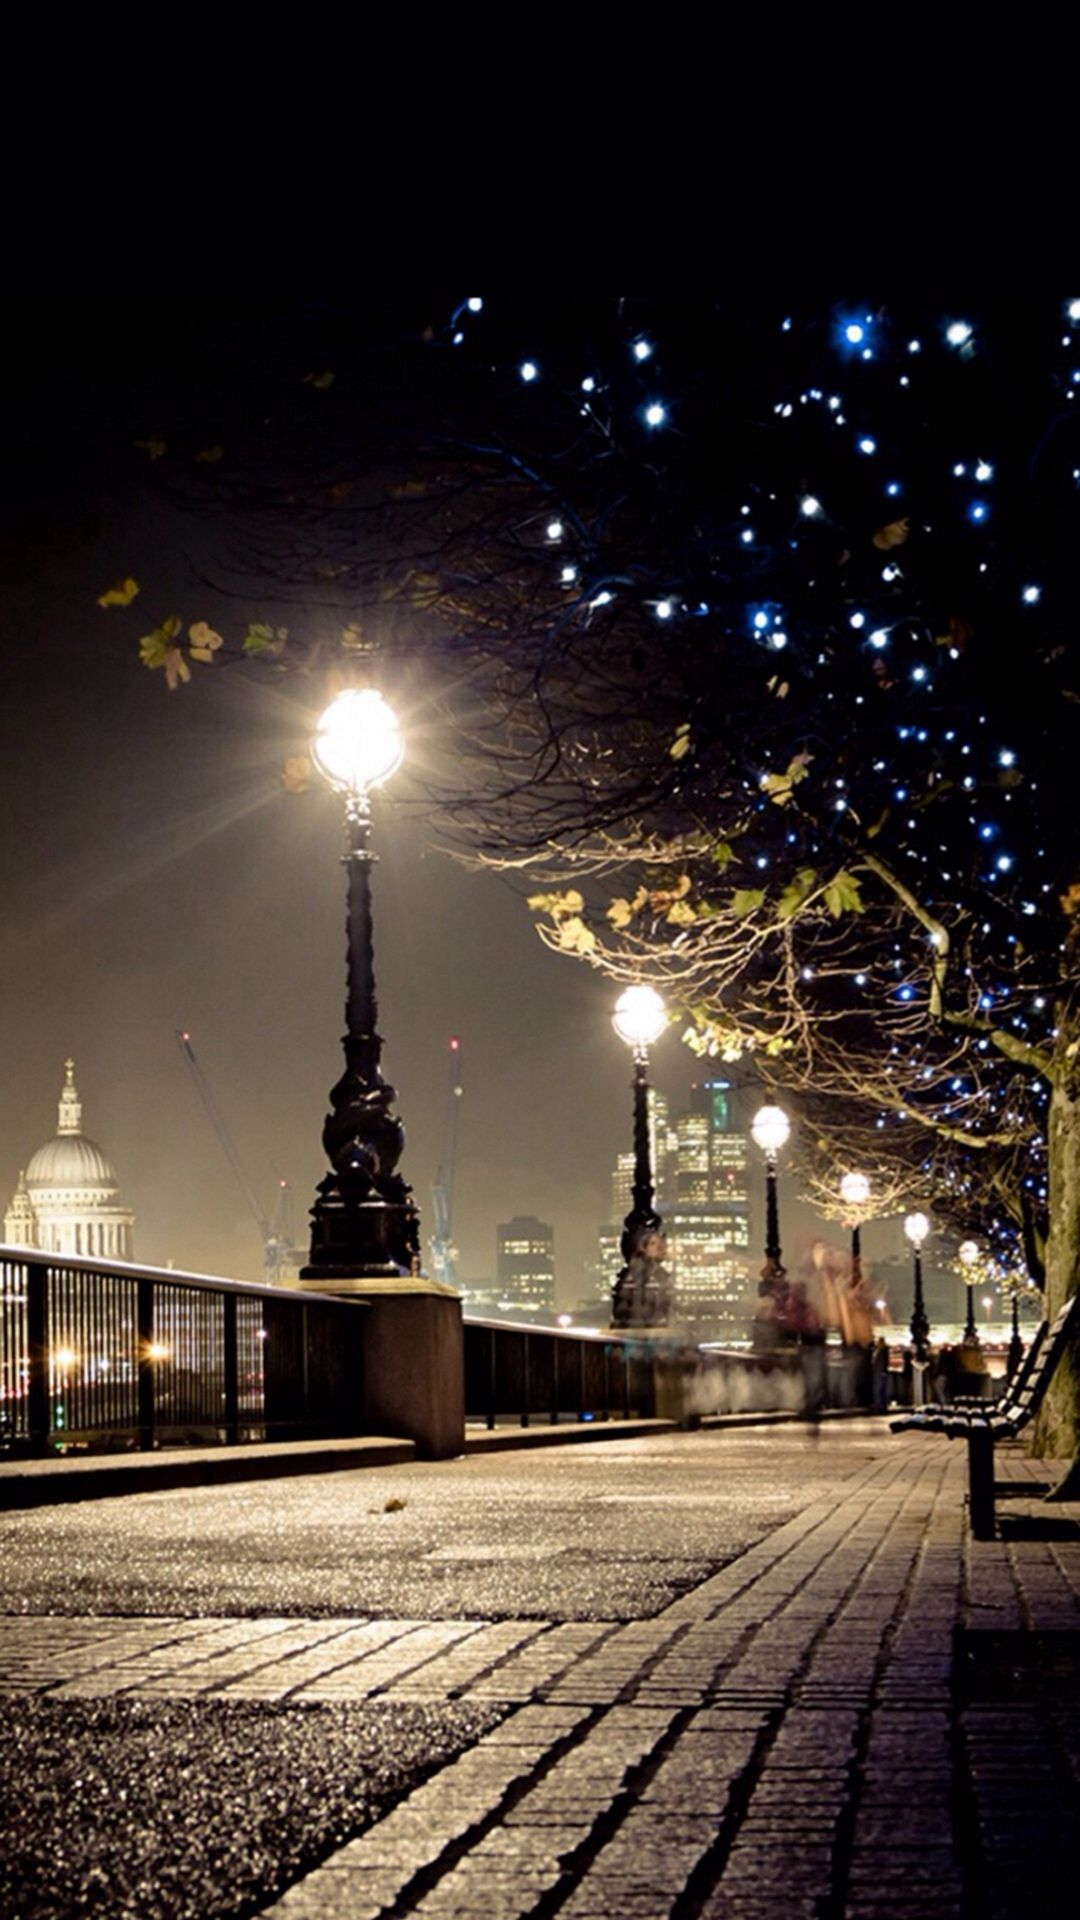 Dark Night Street Lamp Shiny Light Iphone 6 Wallpaper Download Iphone Wallpapers Ipad Wallpapers One Sto New York Christmas Walks In London Beautiful Places